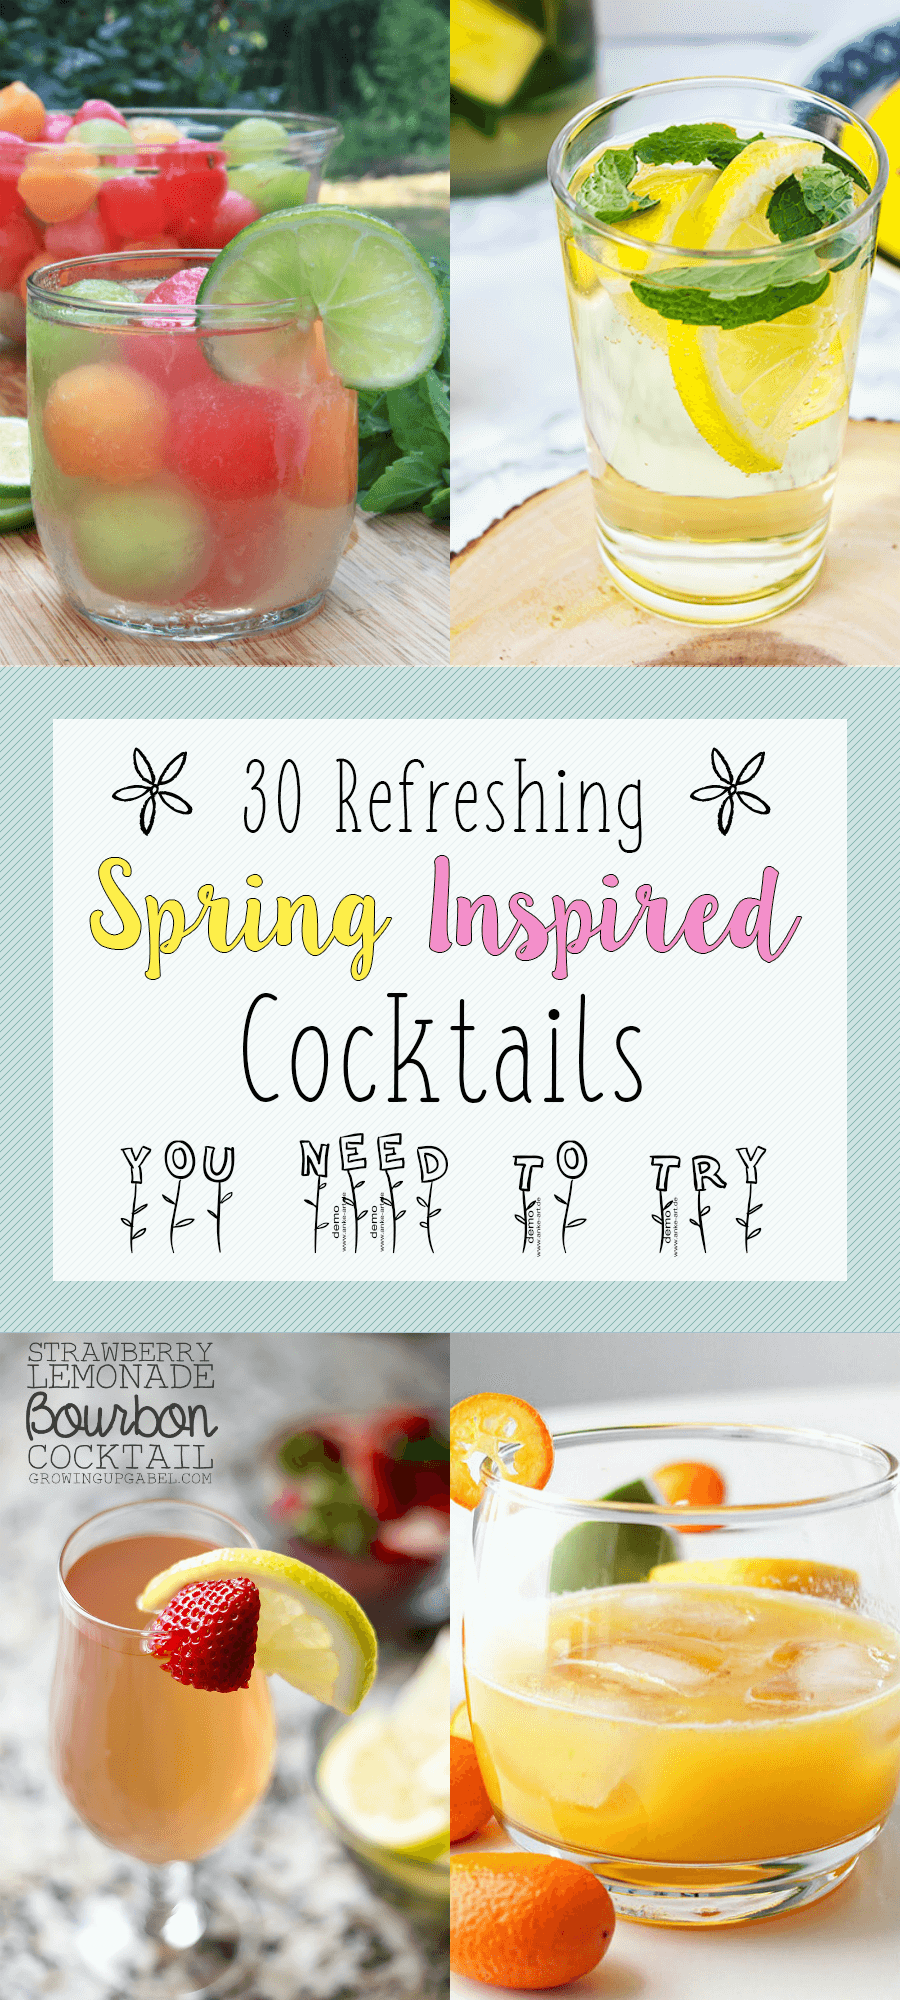 30 Refreshing Spring Inspired Cocktails You Need to Try